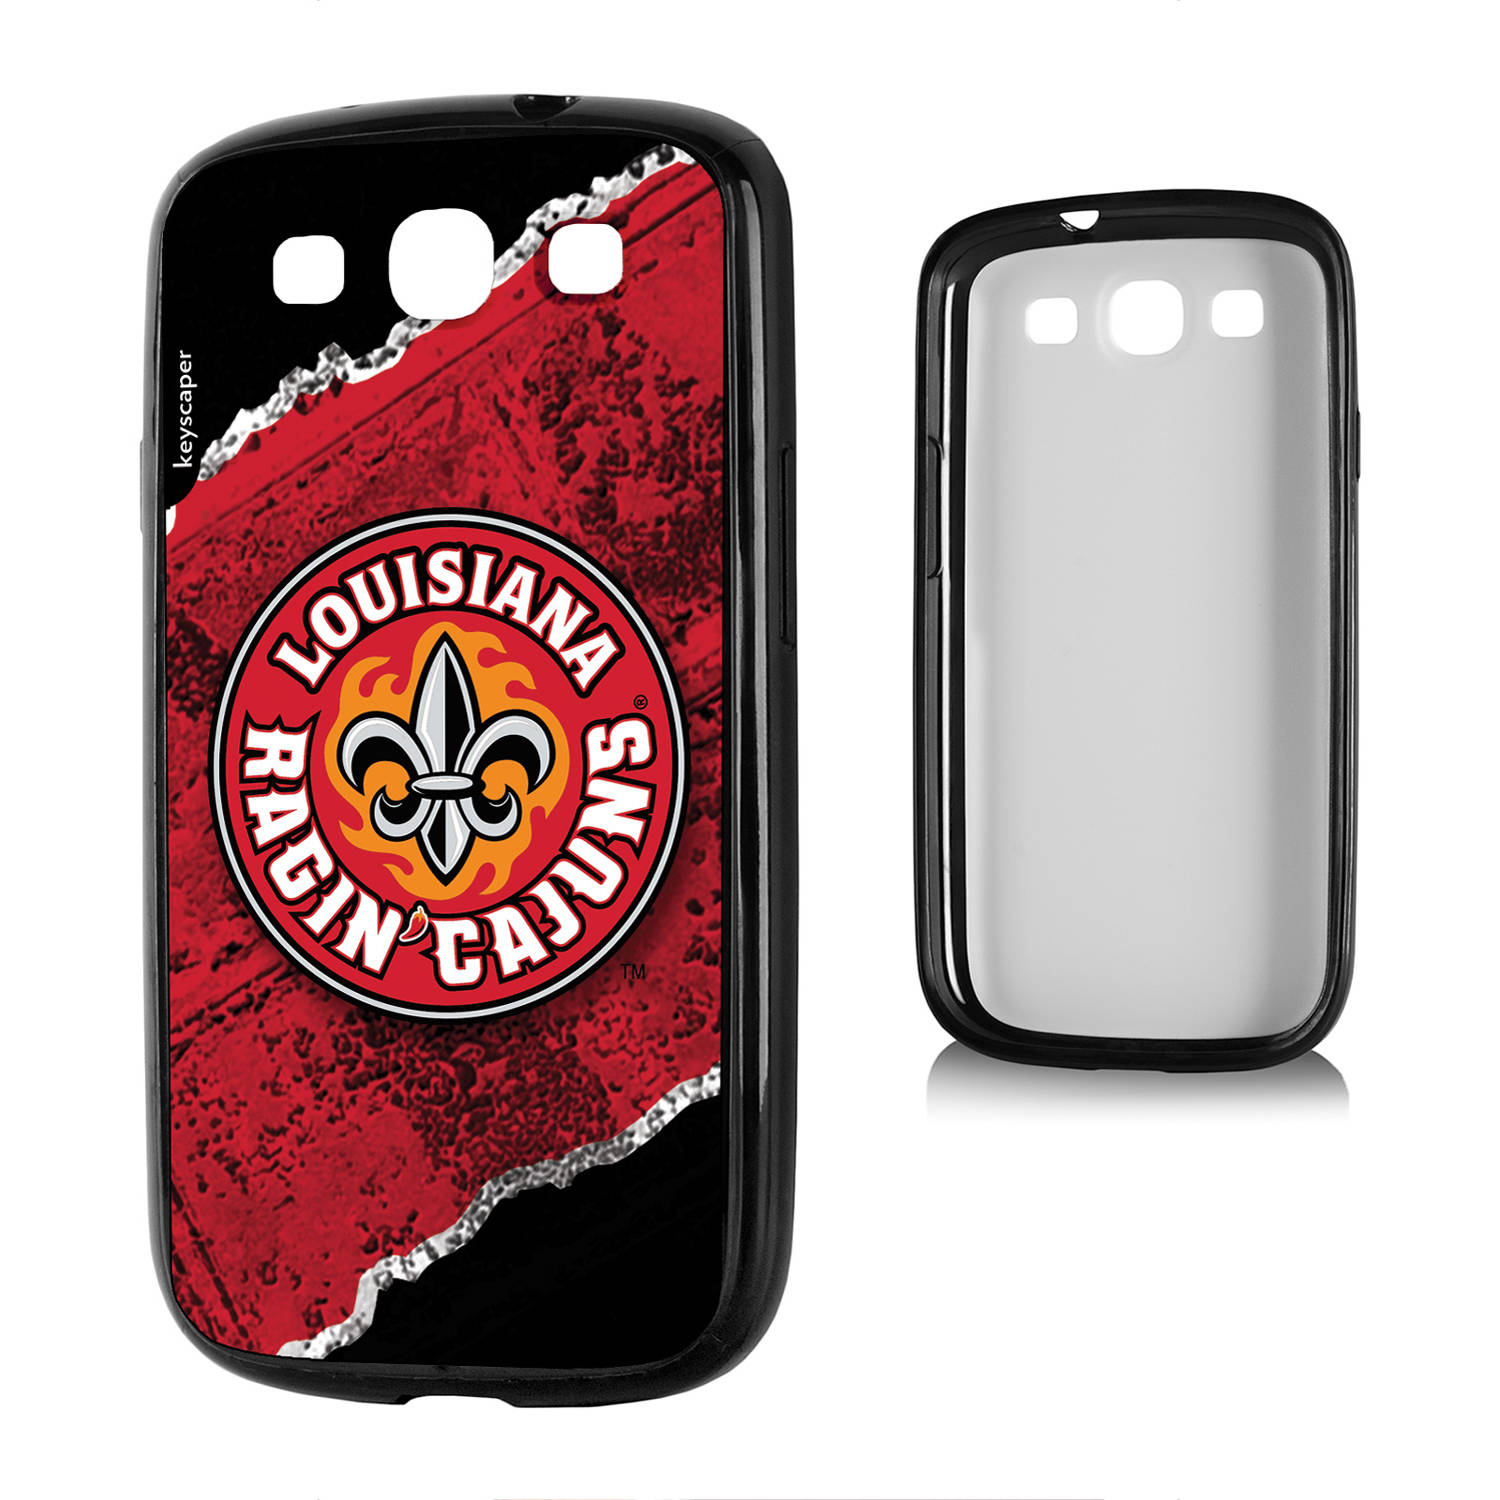 Louisiana Lafayette Ragin' Cajuns Galaxy S3 Bumper Case